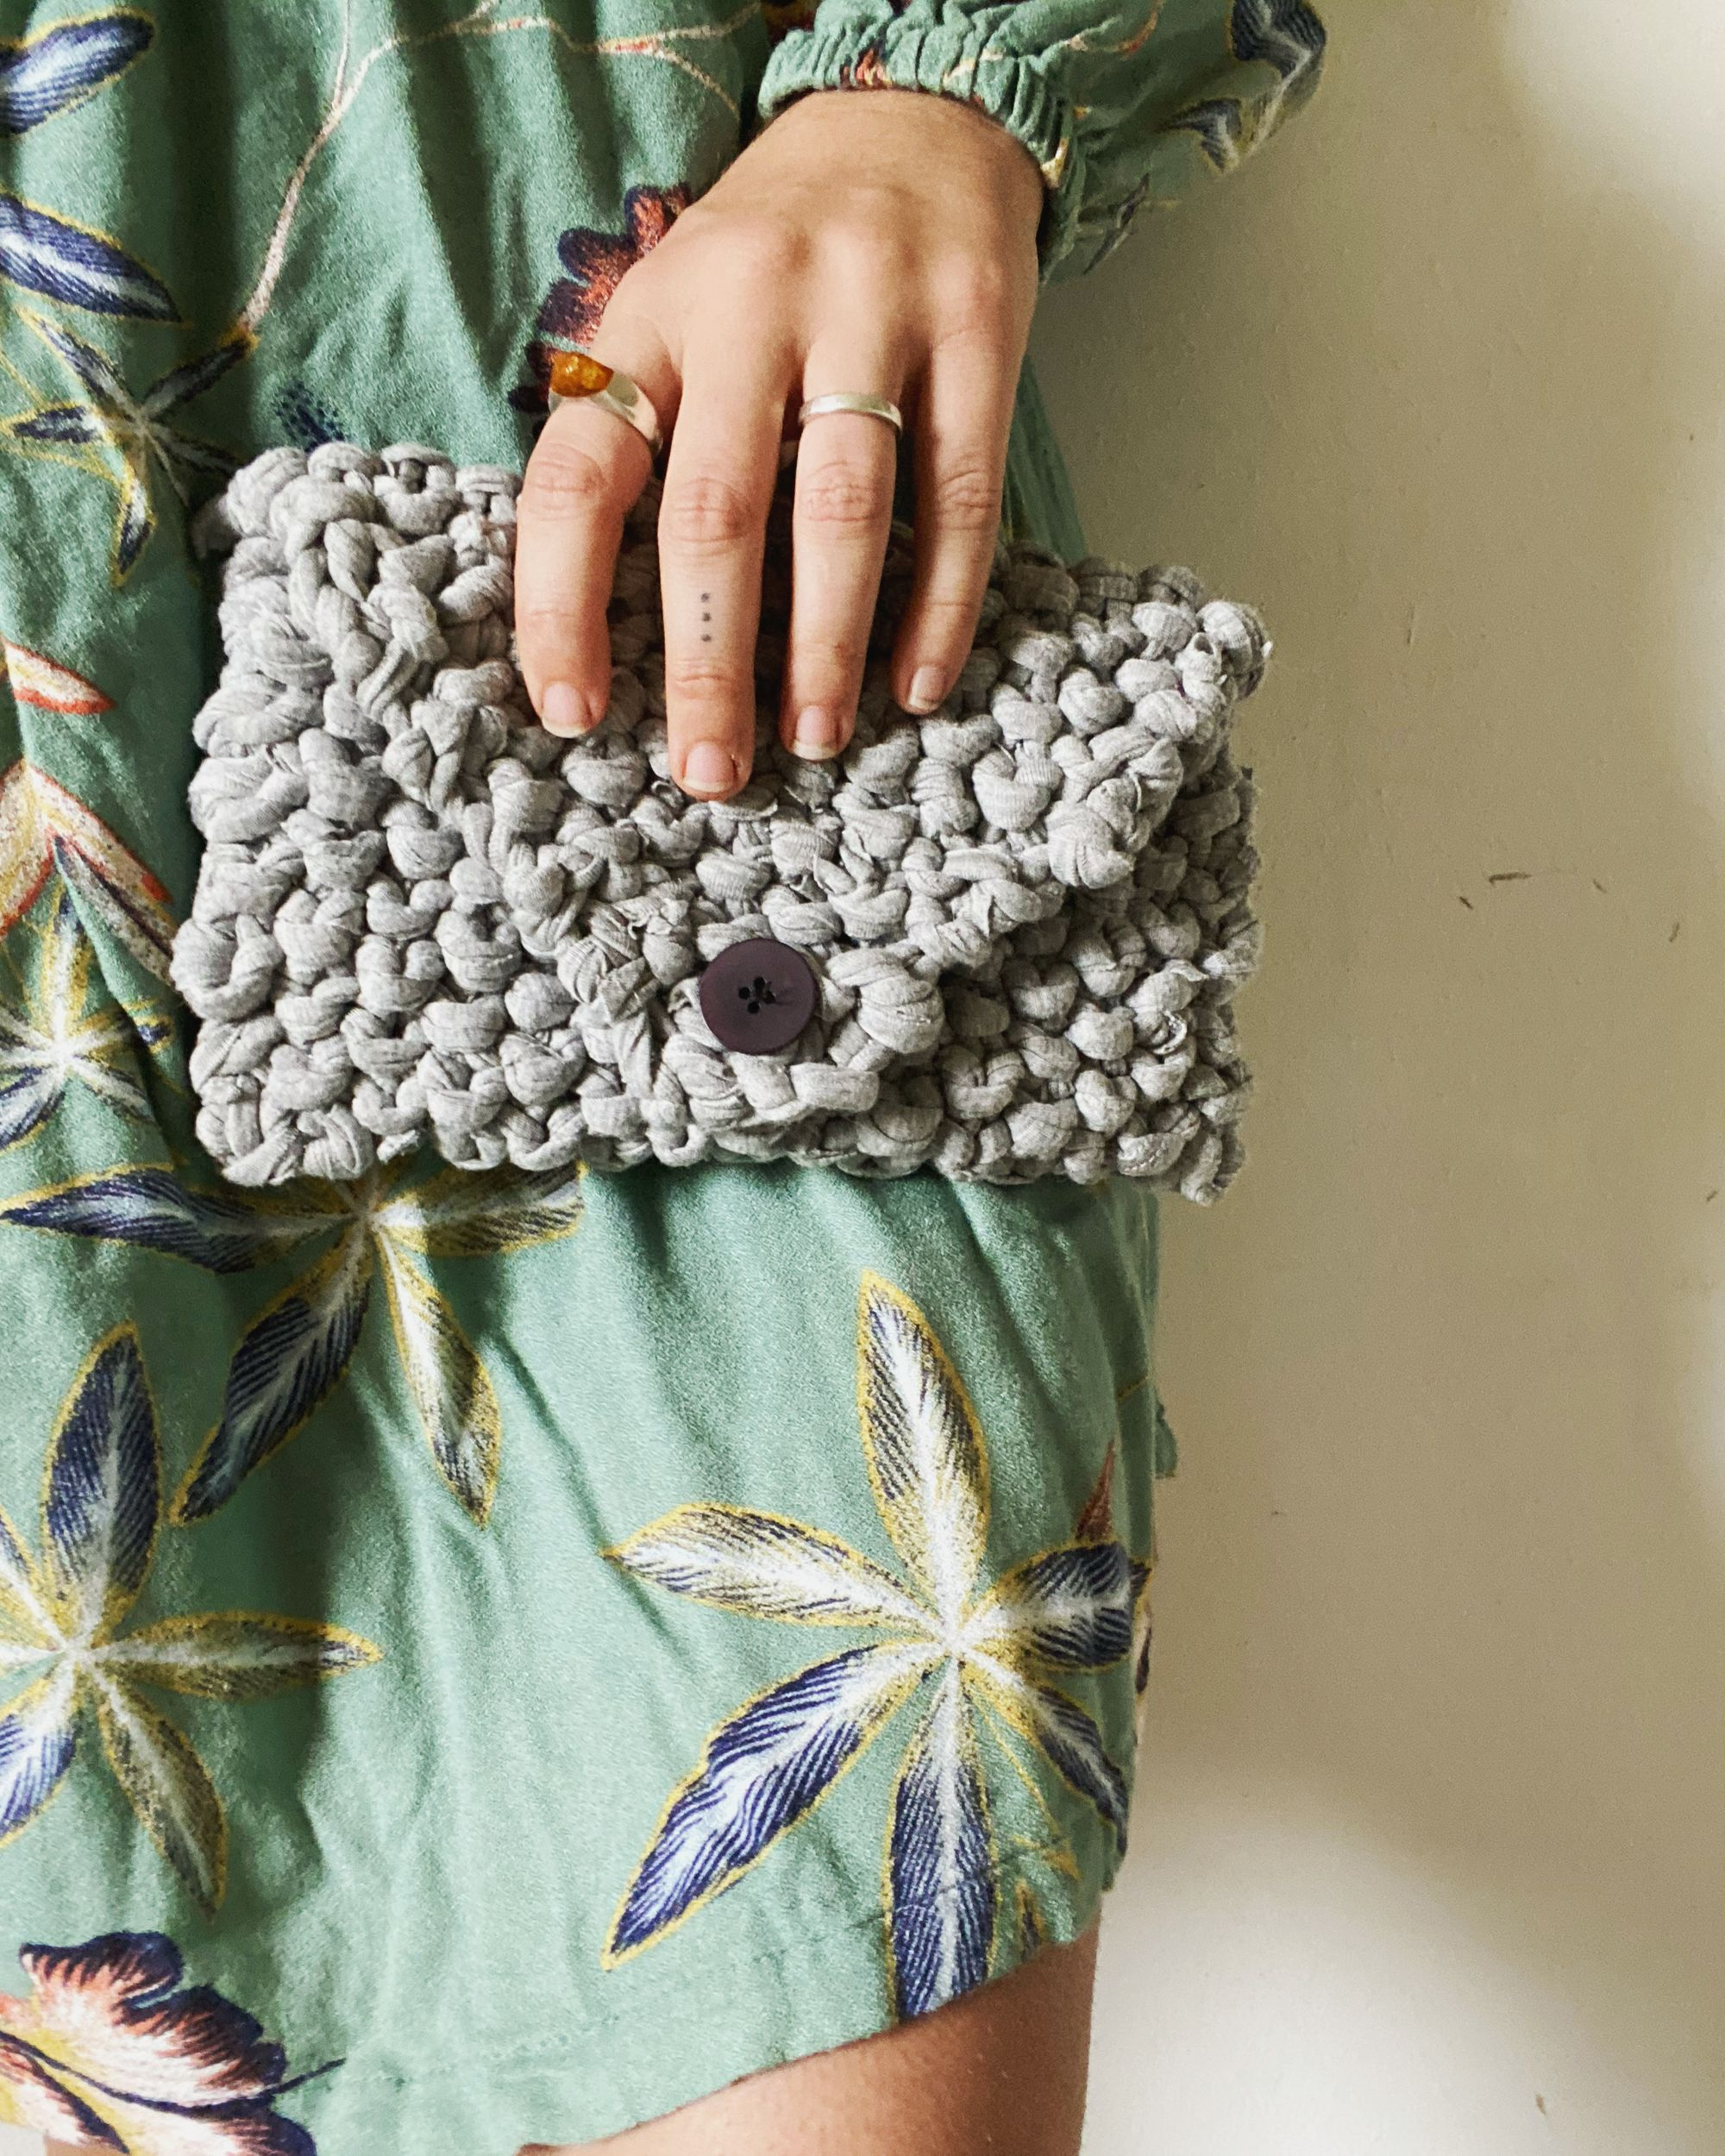 New Video Blog: Knitting a Clutch with Upcycled Material